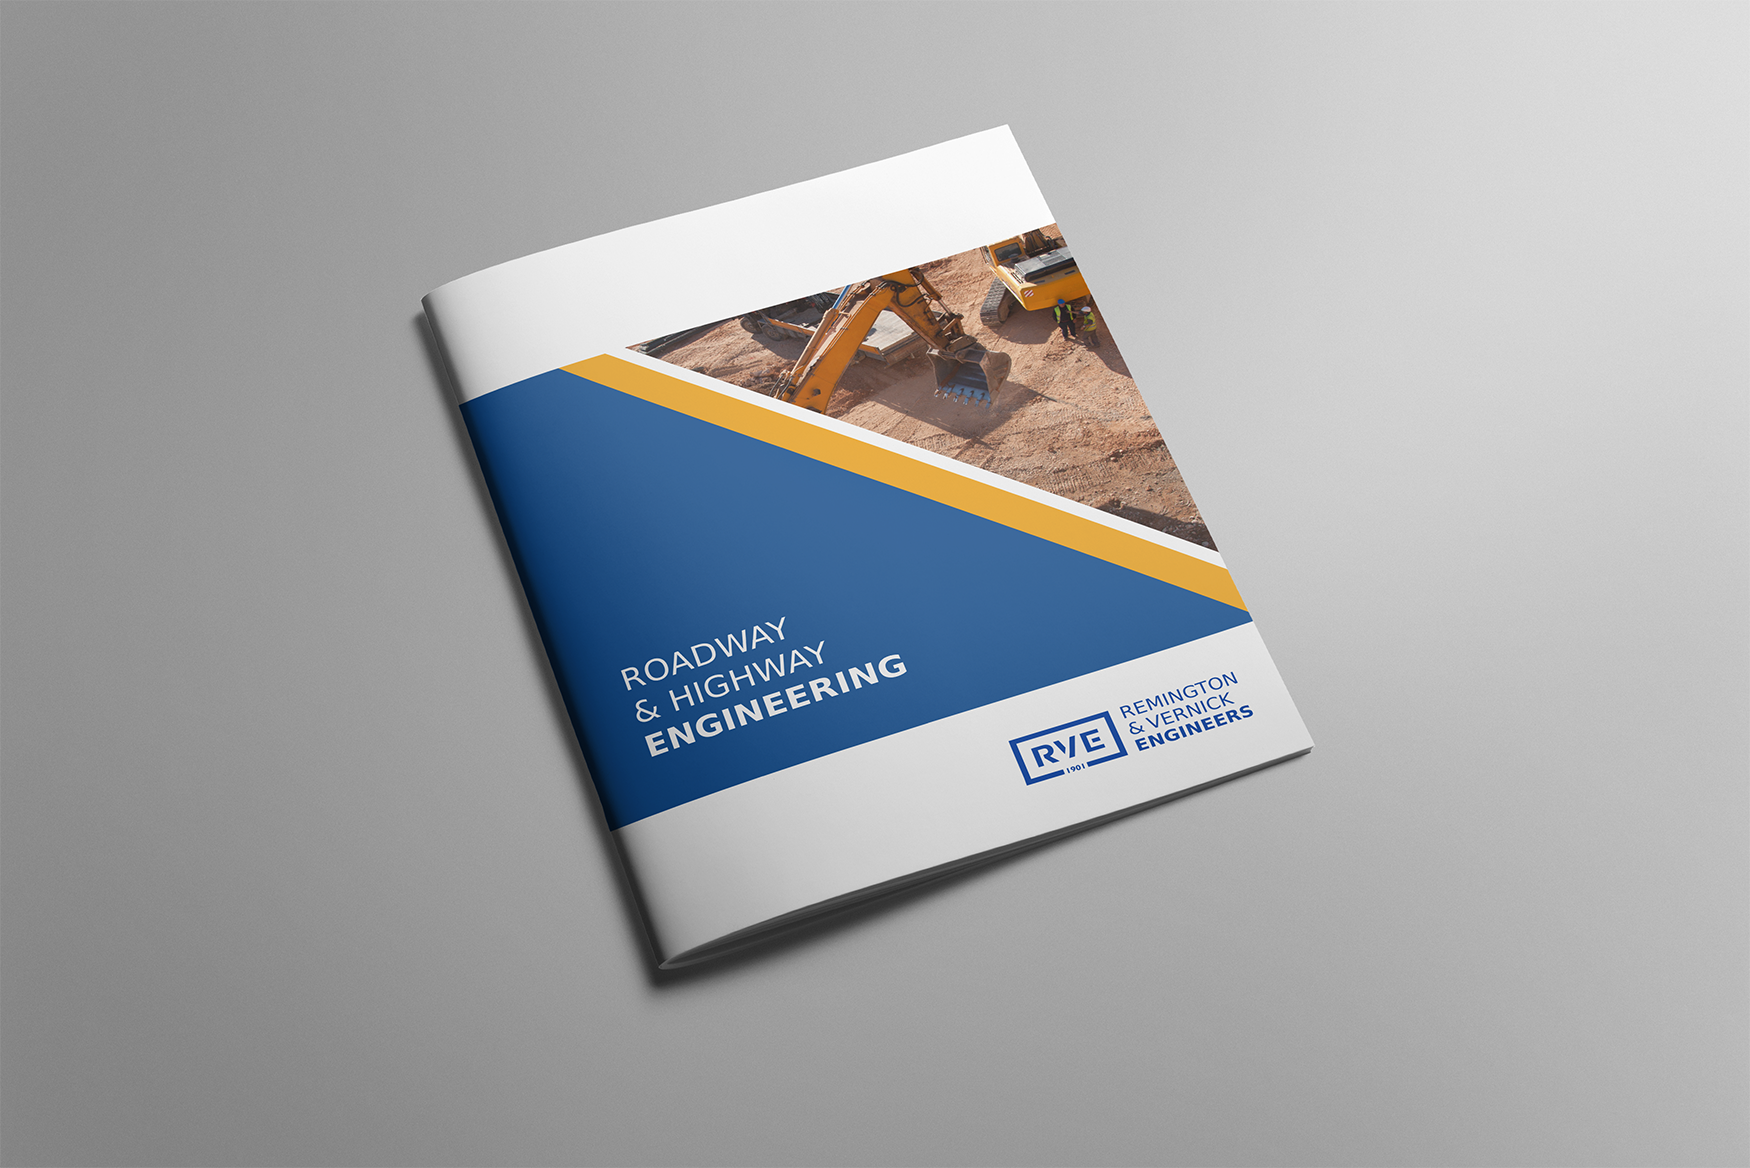 Remington & Vernick Engineers brochure cover mockup